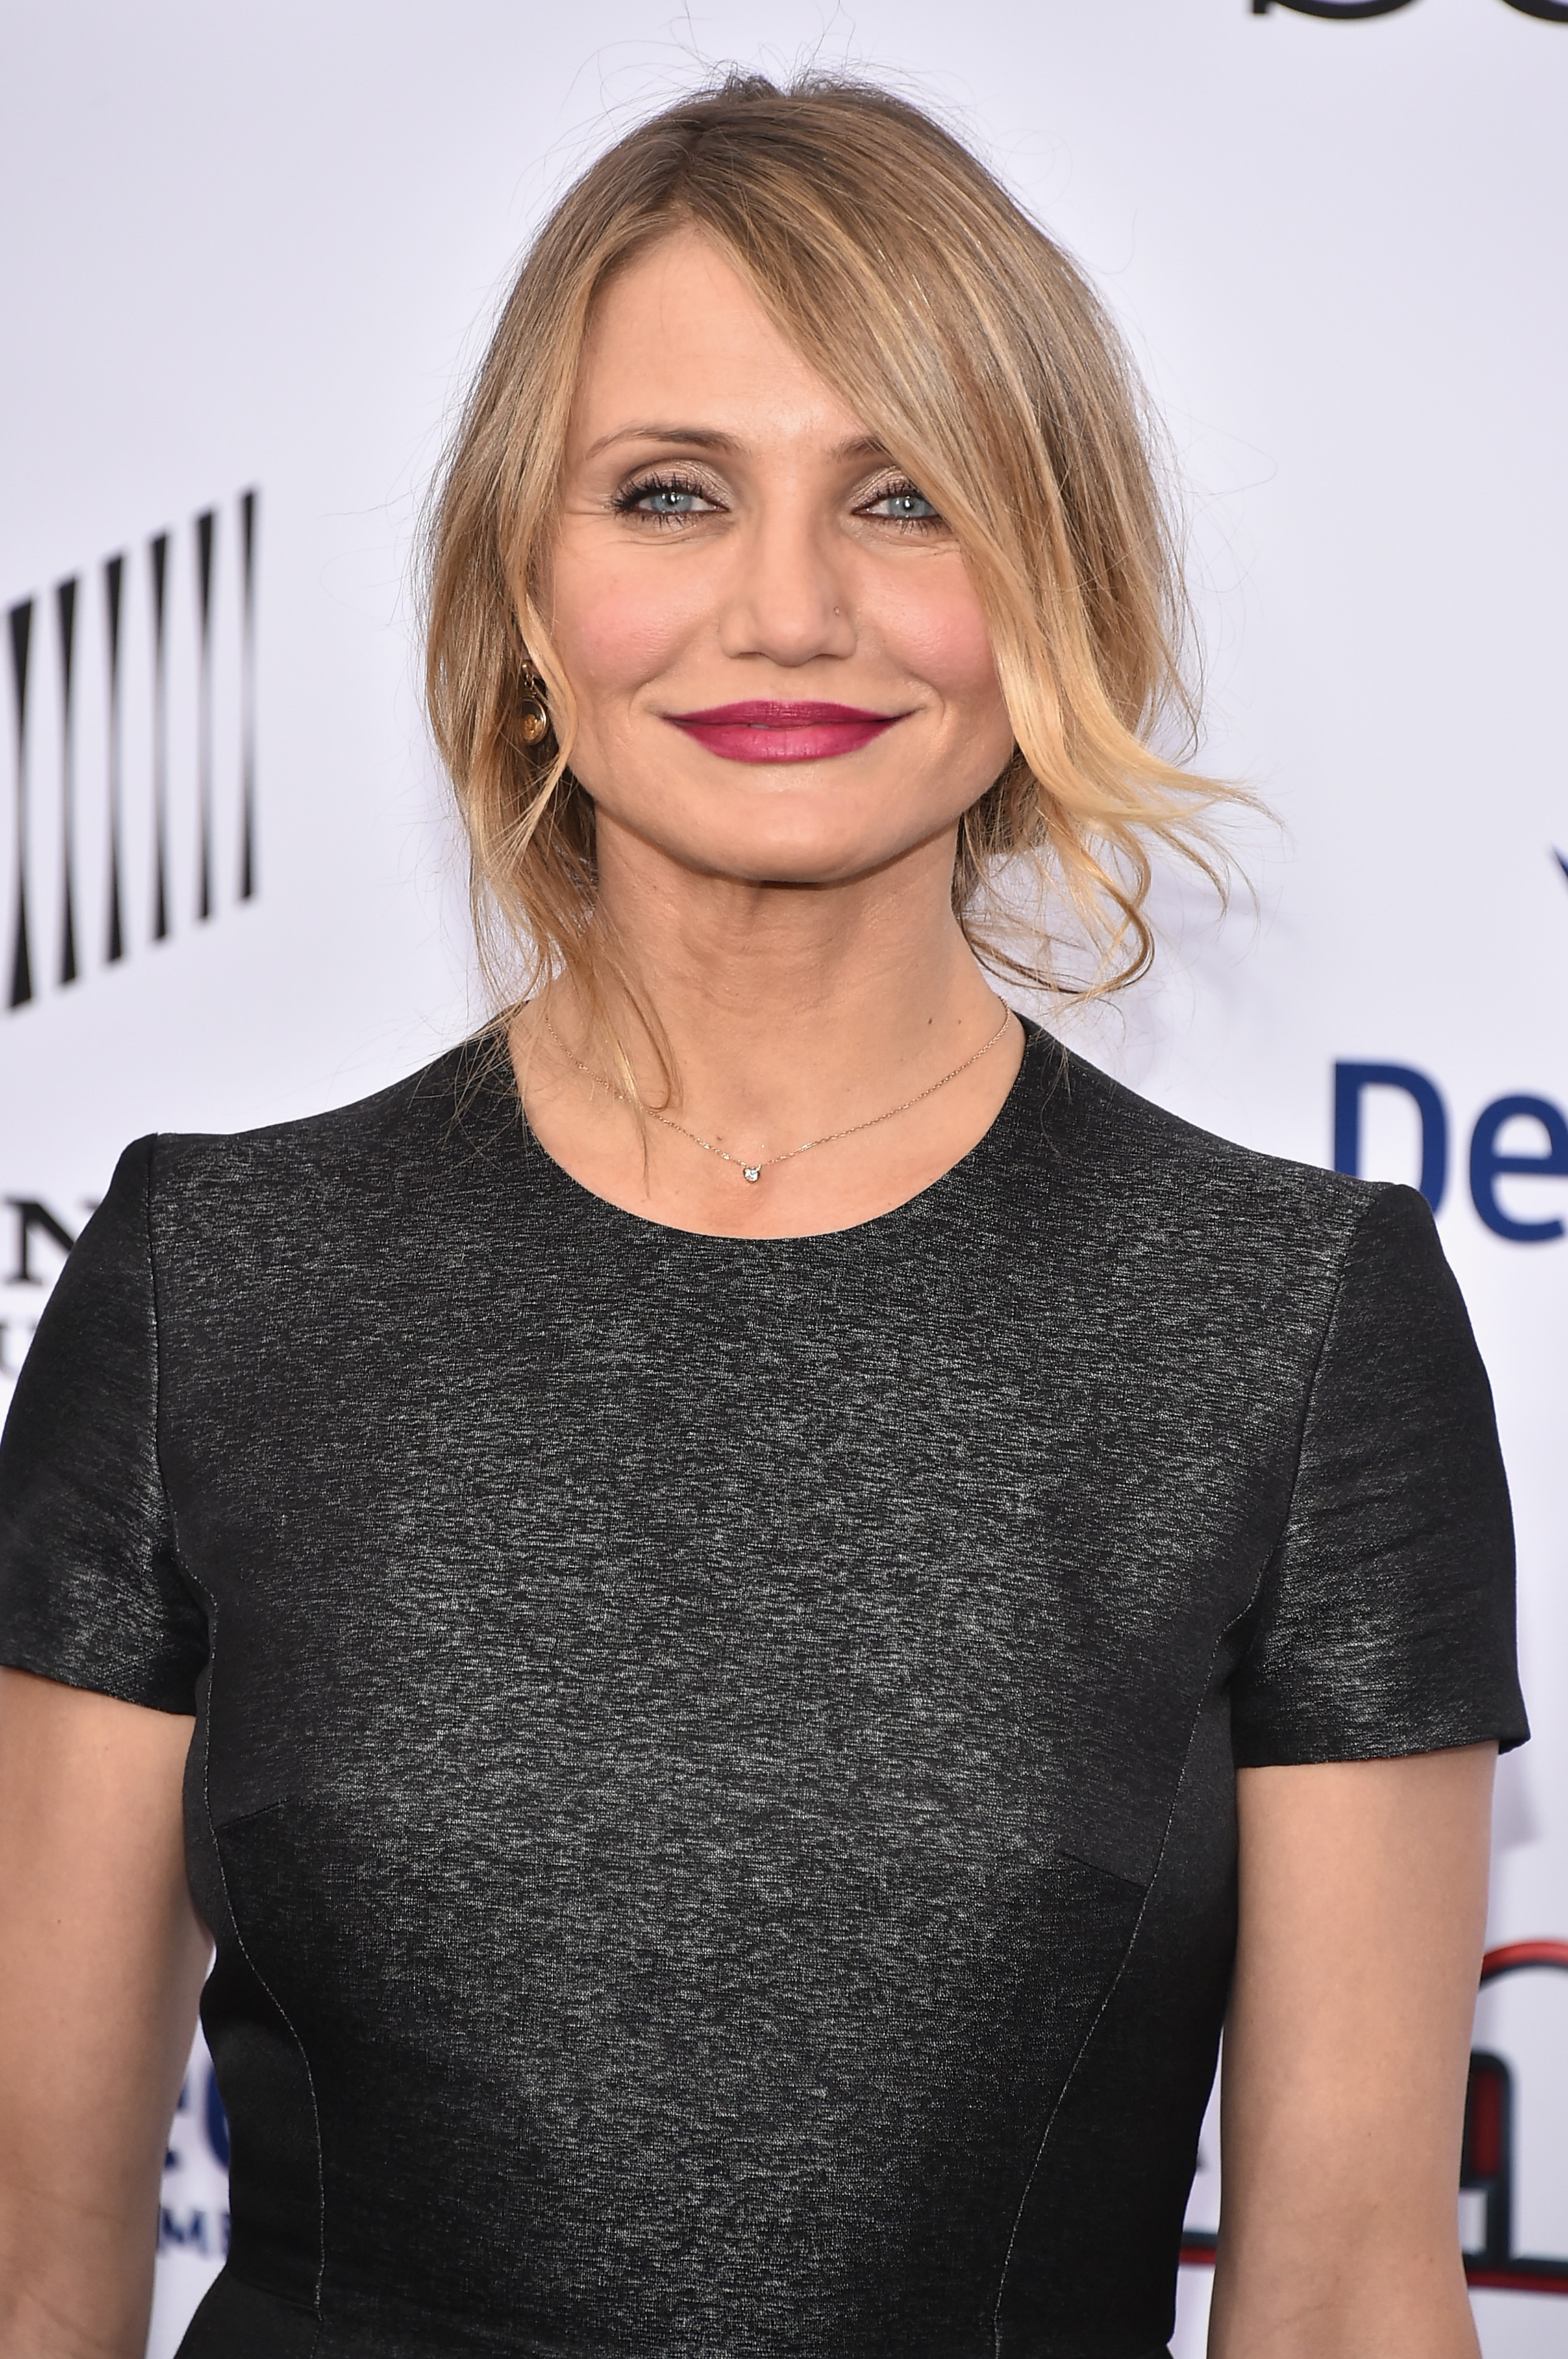 Cameron Diaz In Porn celebrities you didn't know had secret porn pasts